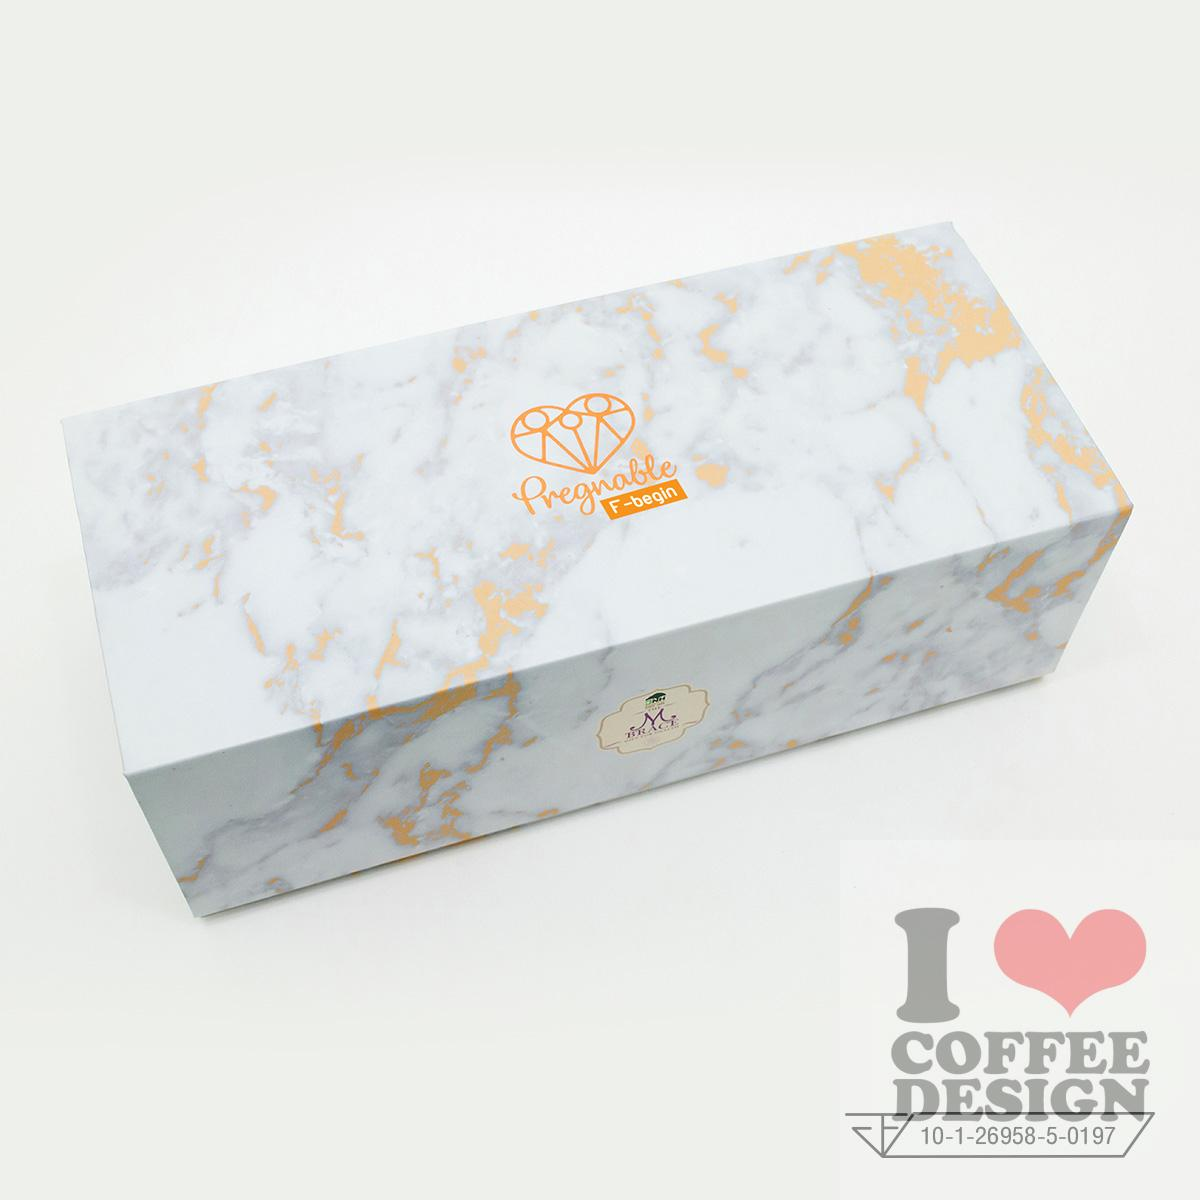 Pregnable Packaging Design